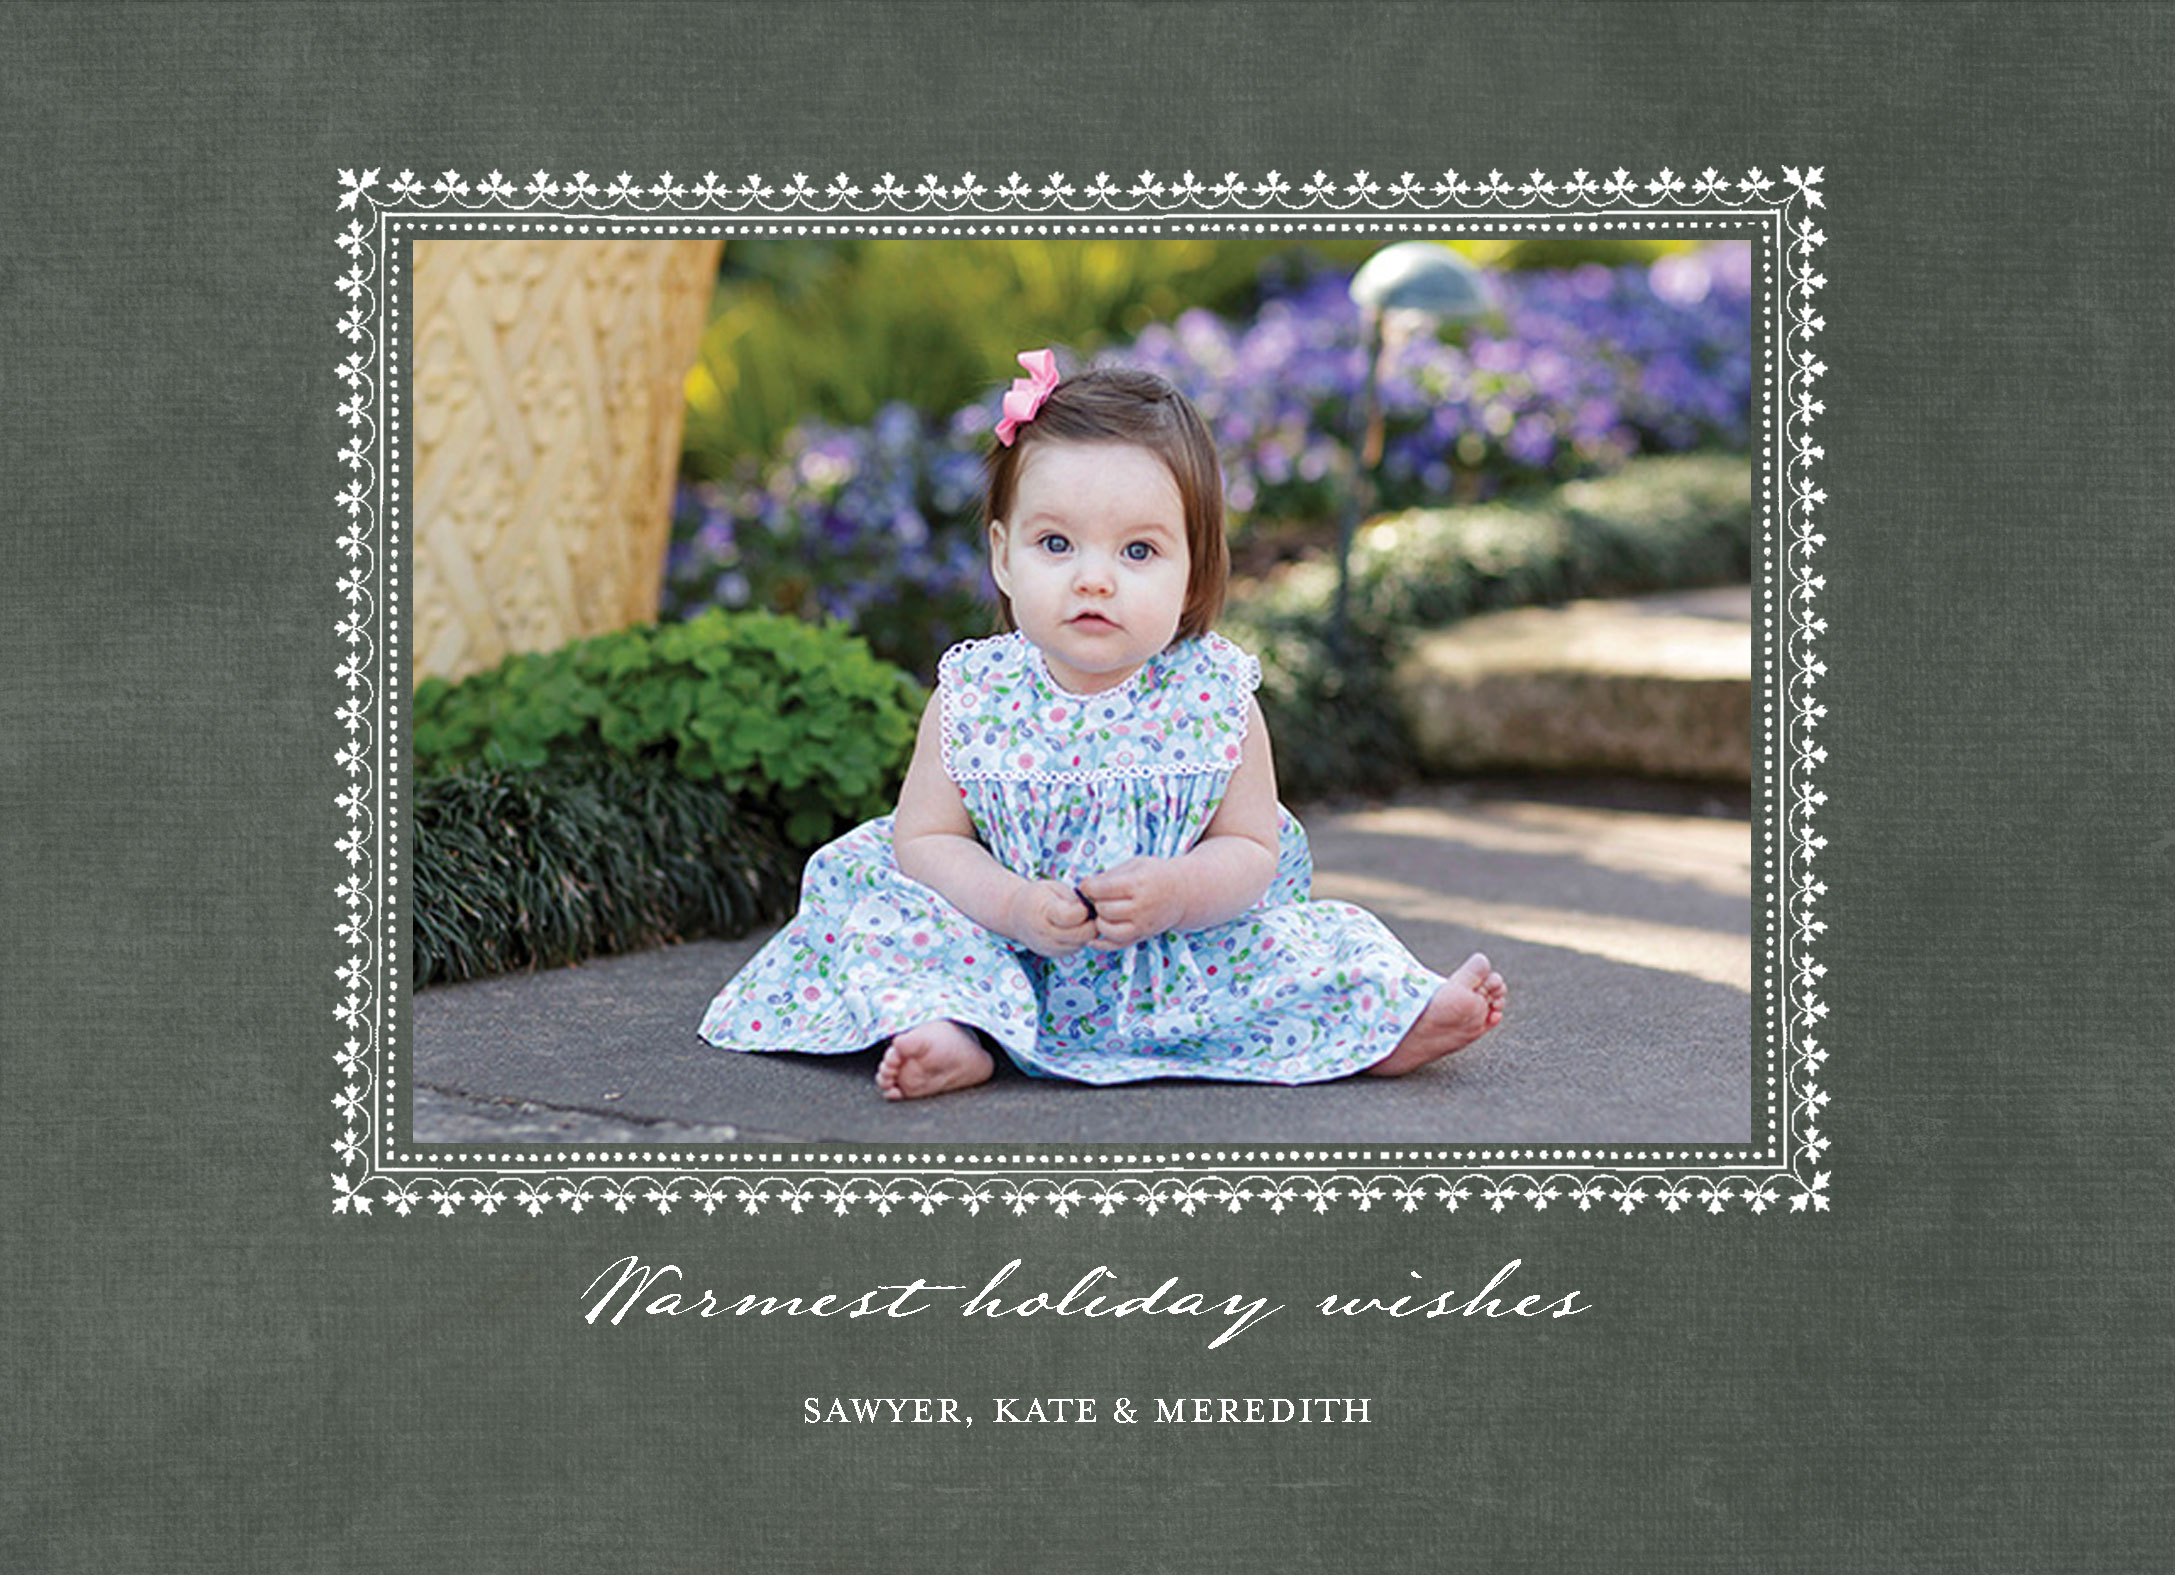 Warmest-holiday-wishes-photo-card